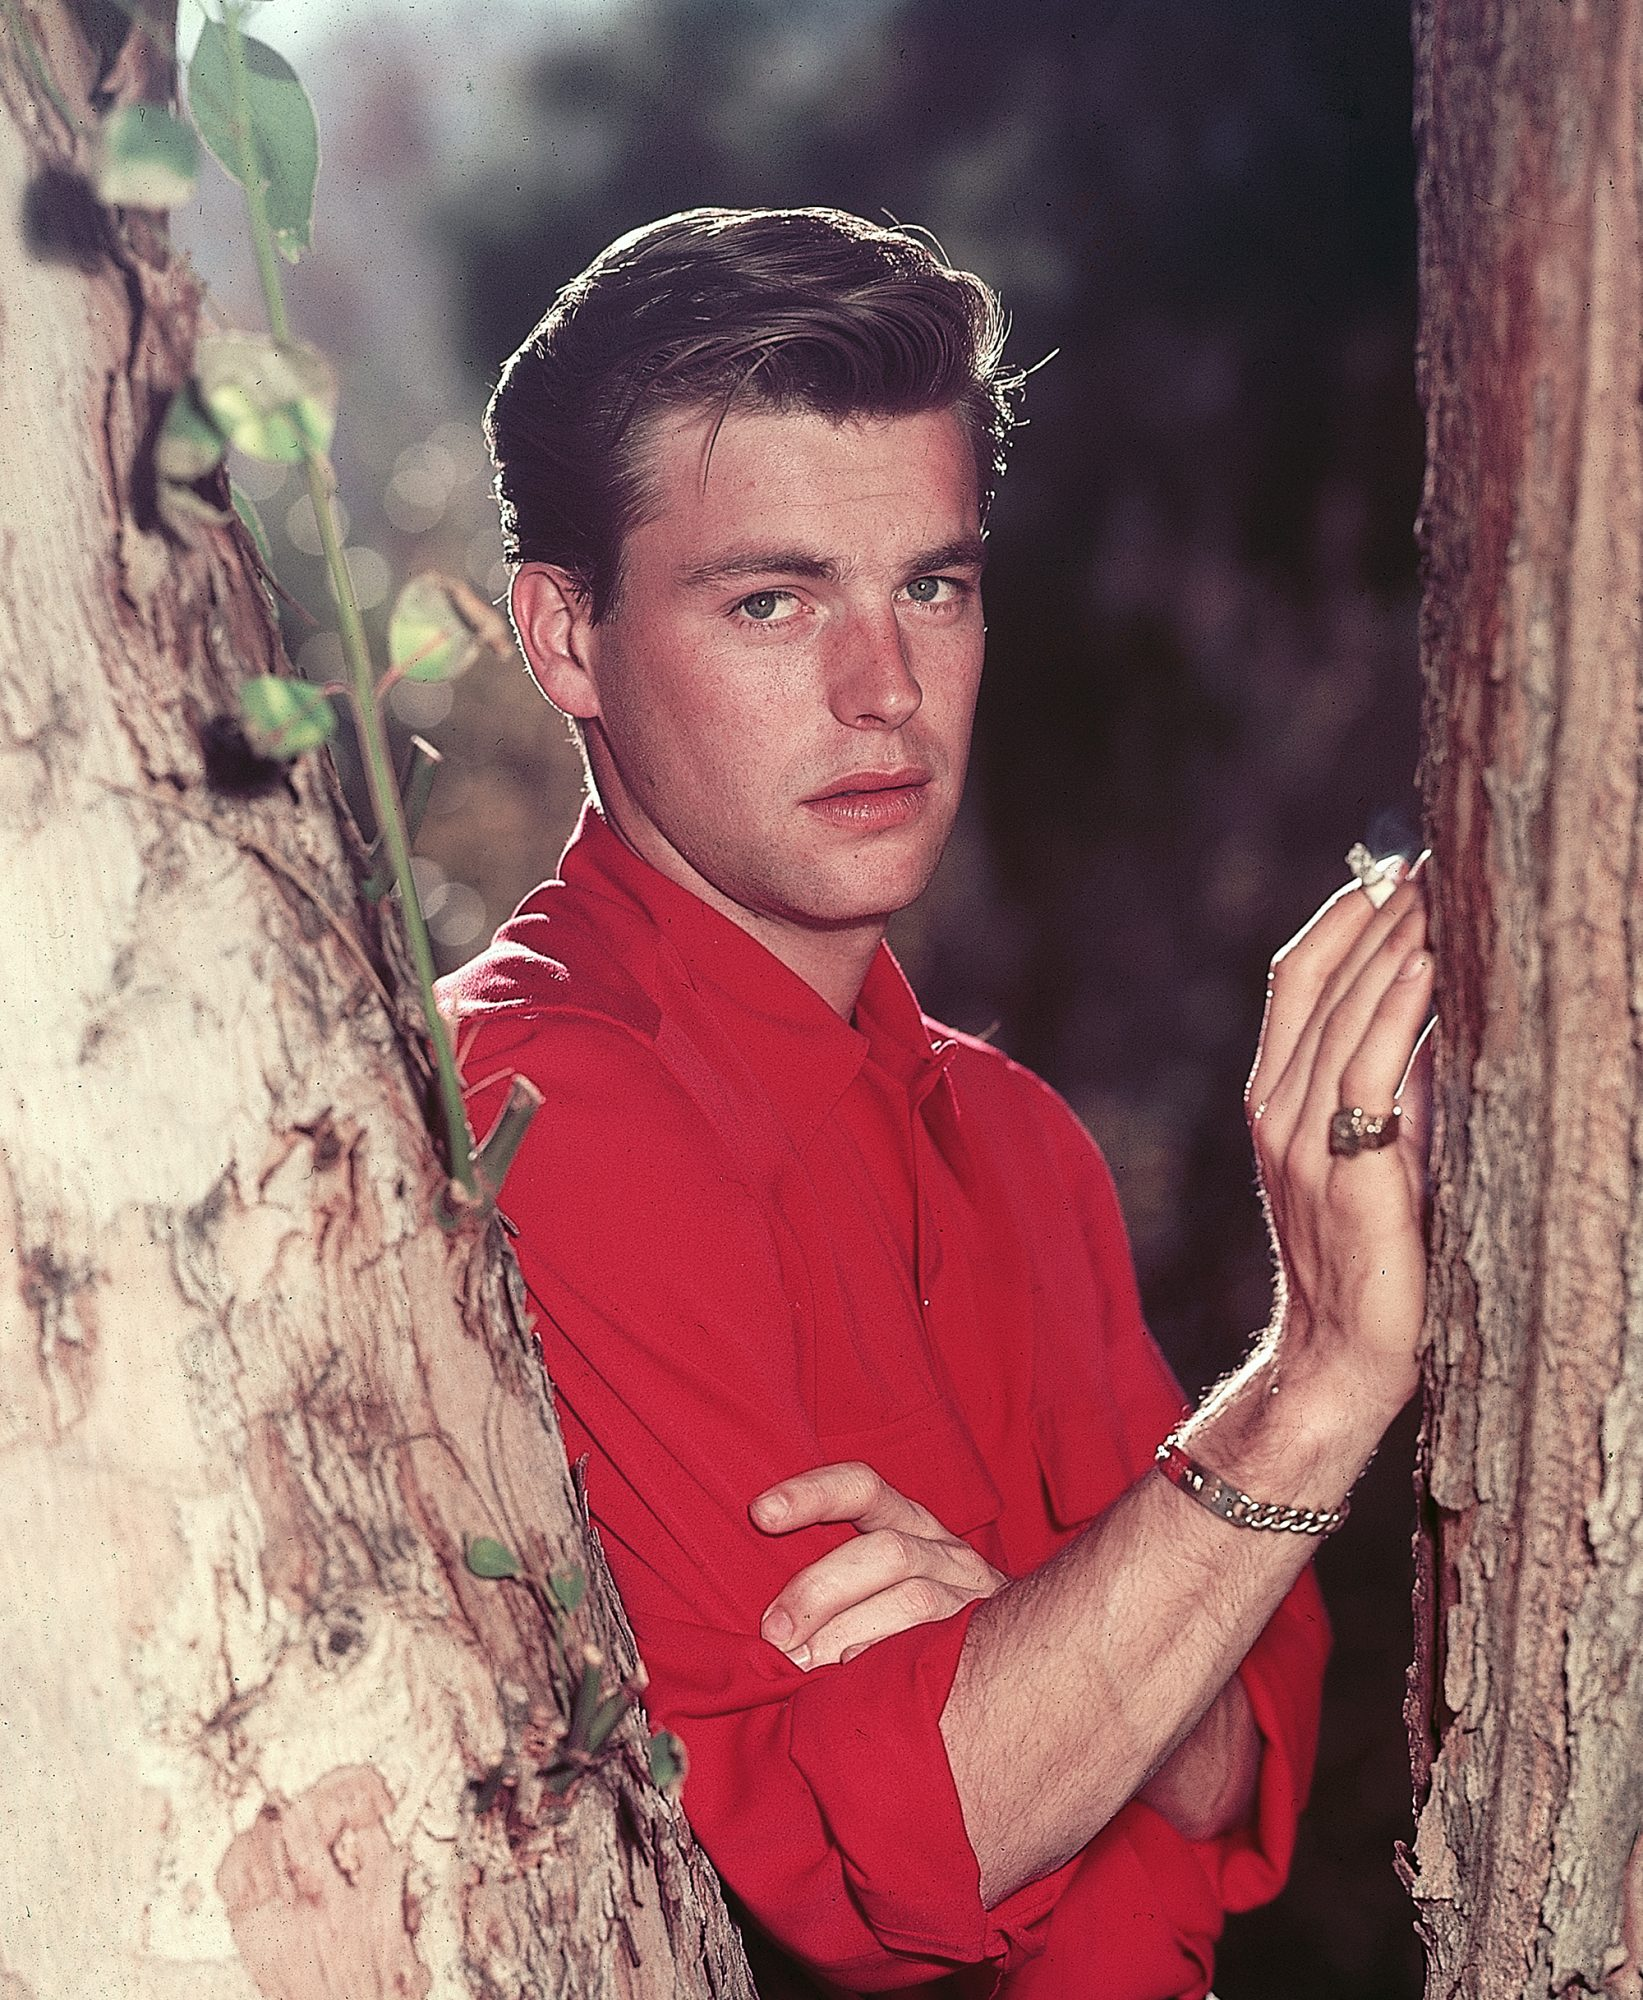 2/3/1955-Palm Springs, CA: Actor Robert Wagner stands, posed, smoking beside tree, close-up.